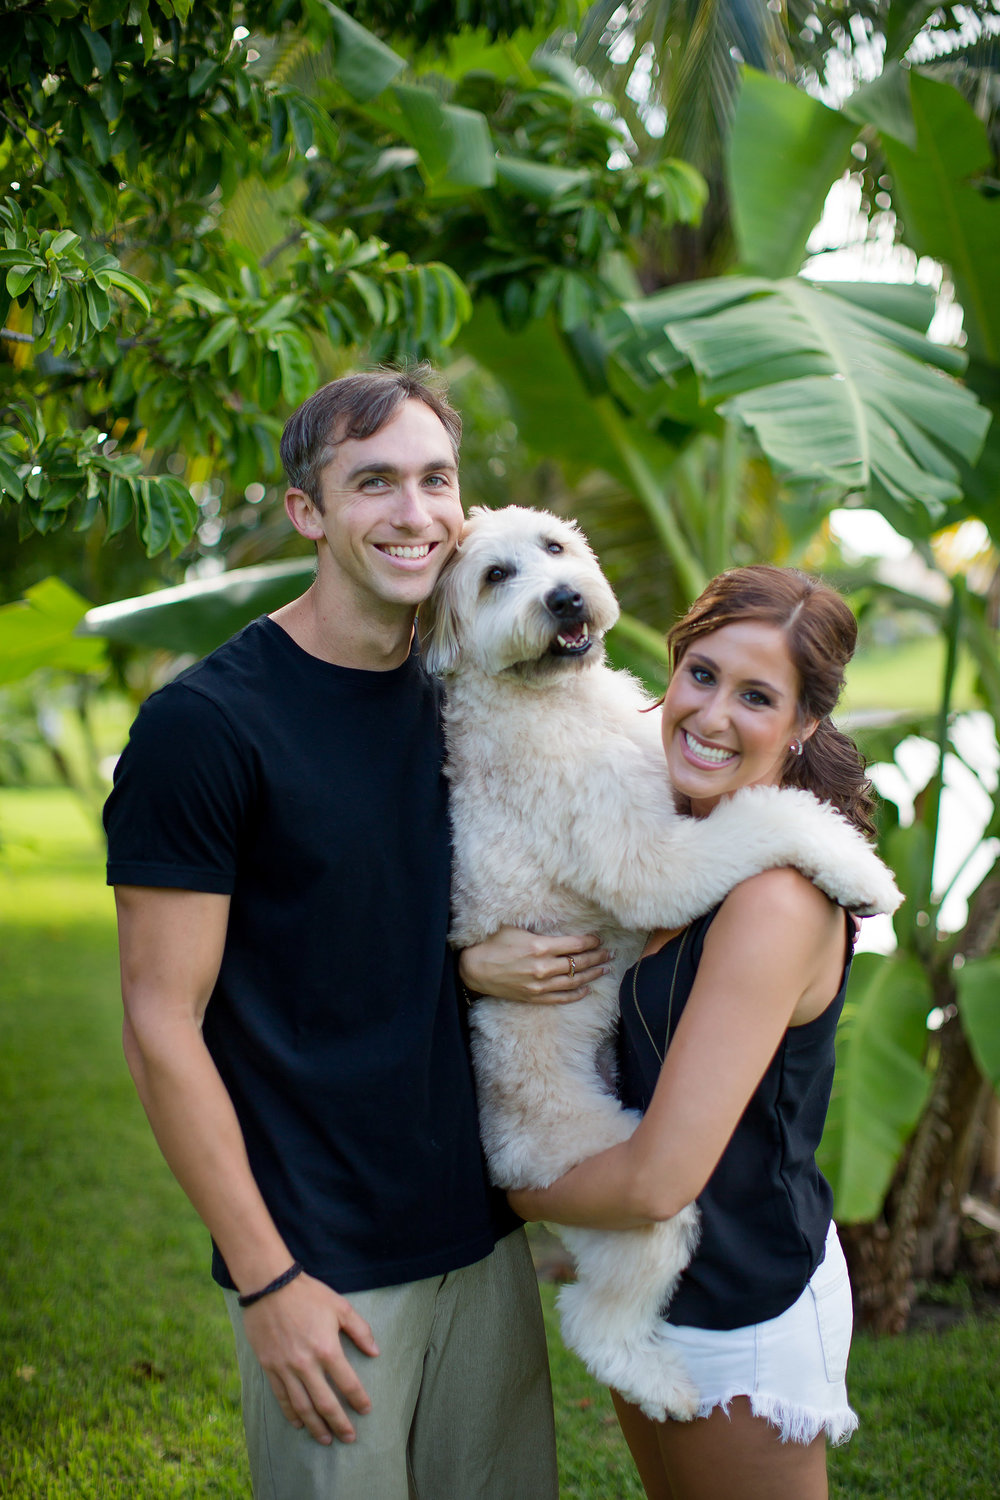 Adorable engaged couple holding their cute puppy